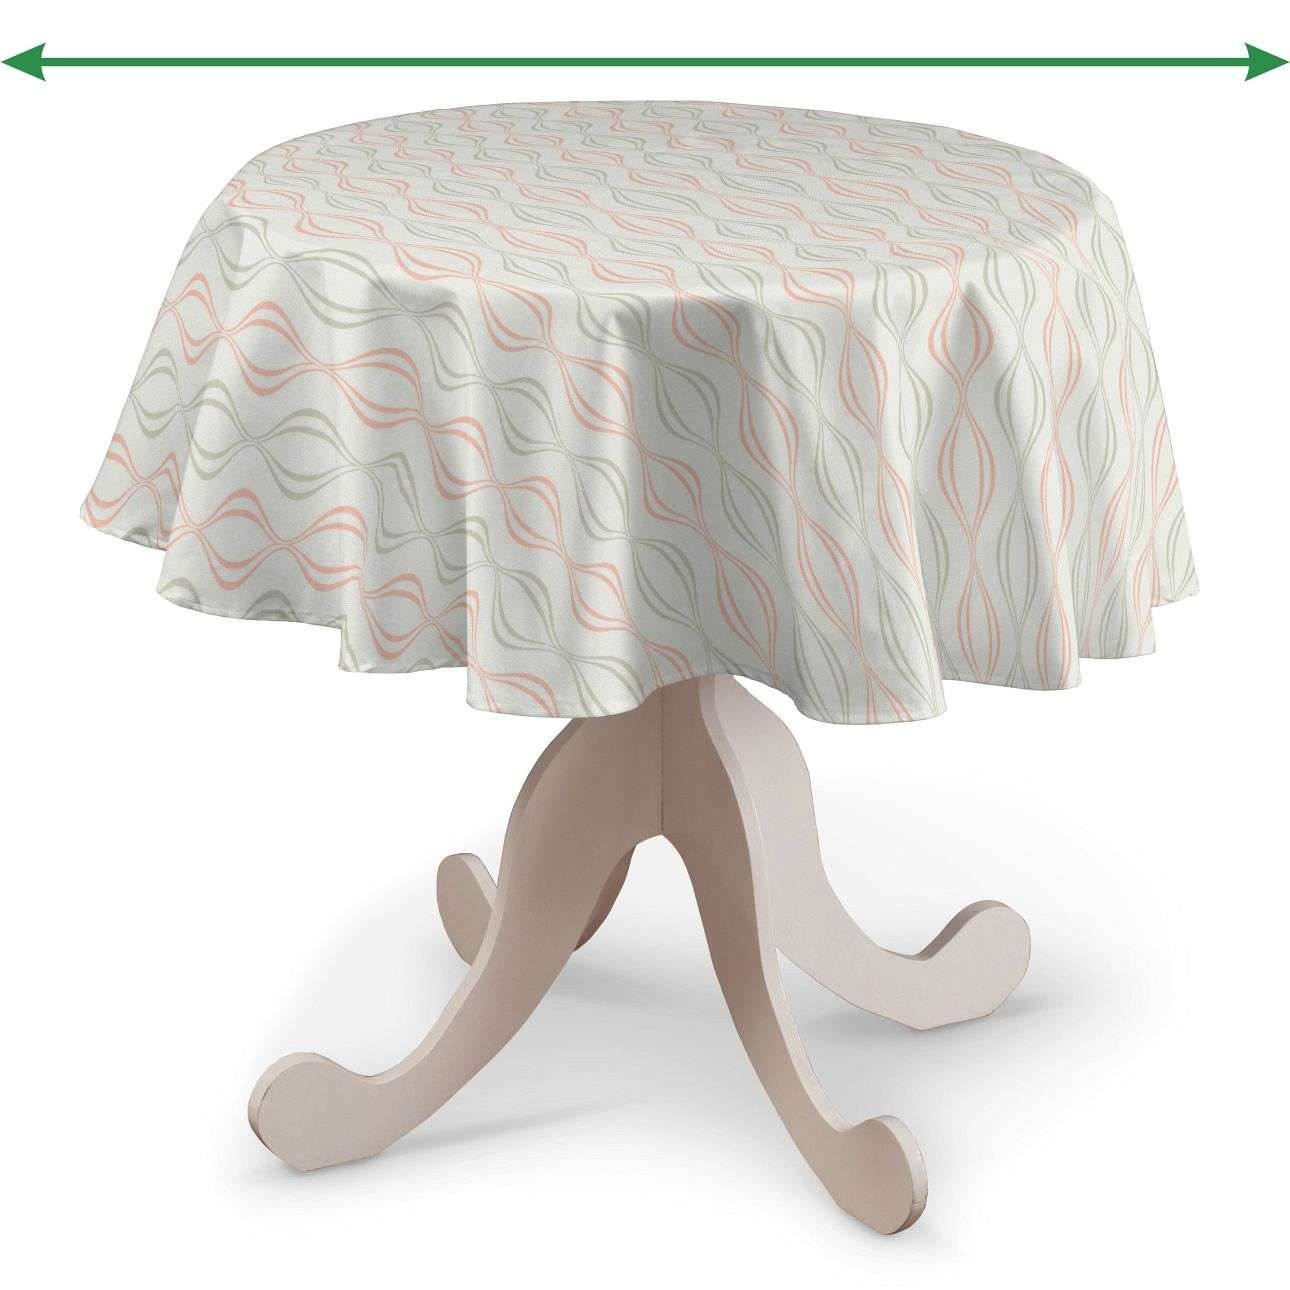 Round tablecloth in collection SALE, fabric: 141-49